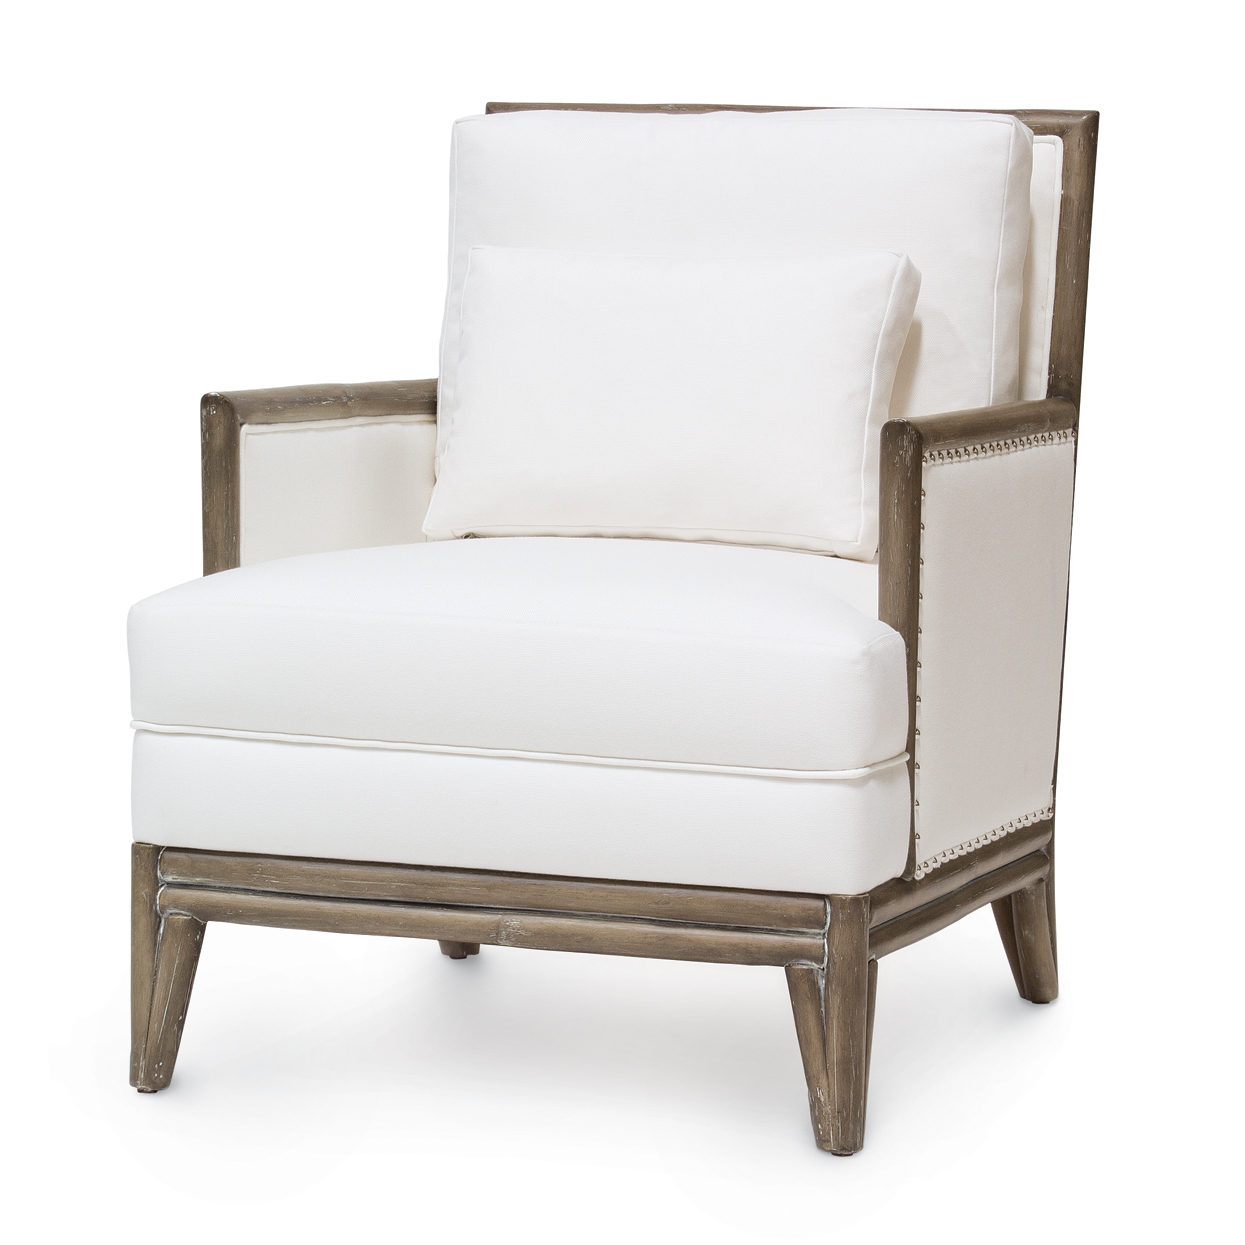 Lovely BARCLAY LOUNGE CHAIR